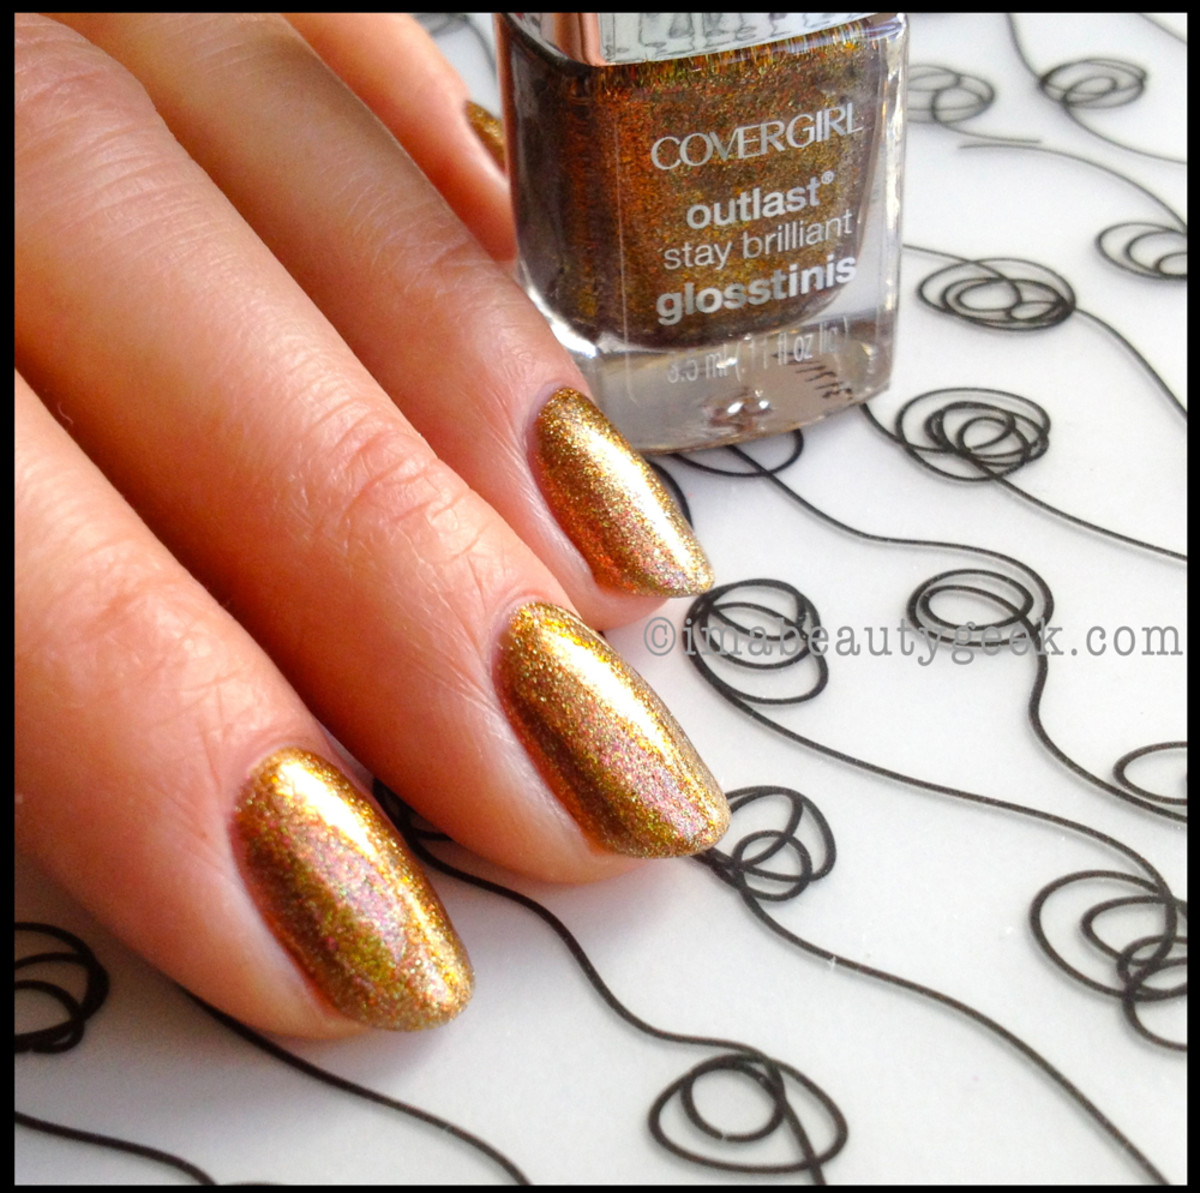 Hunger Games Catching Fire CoverGirl Glosstinis Capitol Collection Glosstinis Seared Bronze